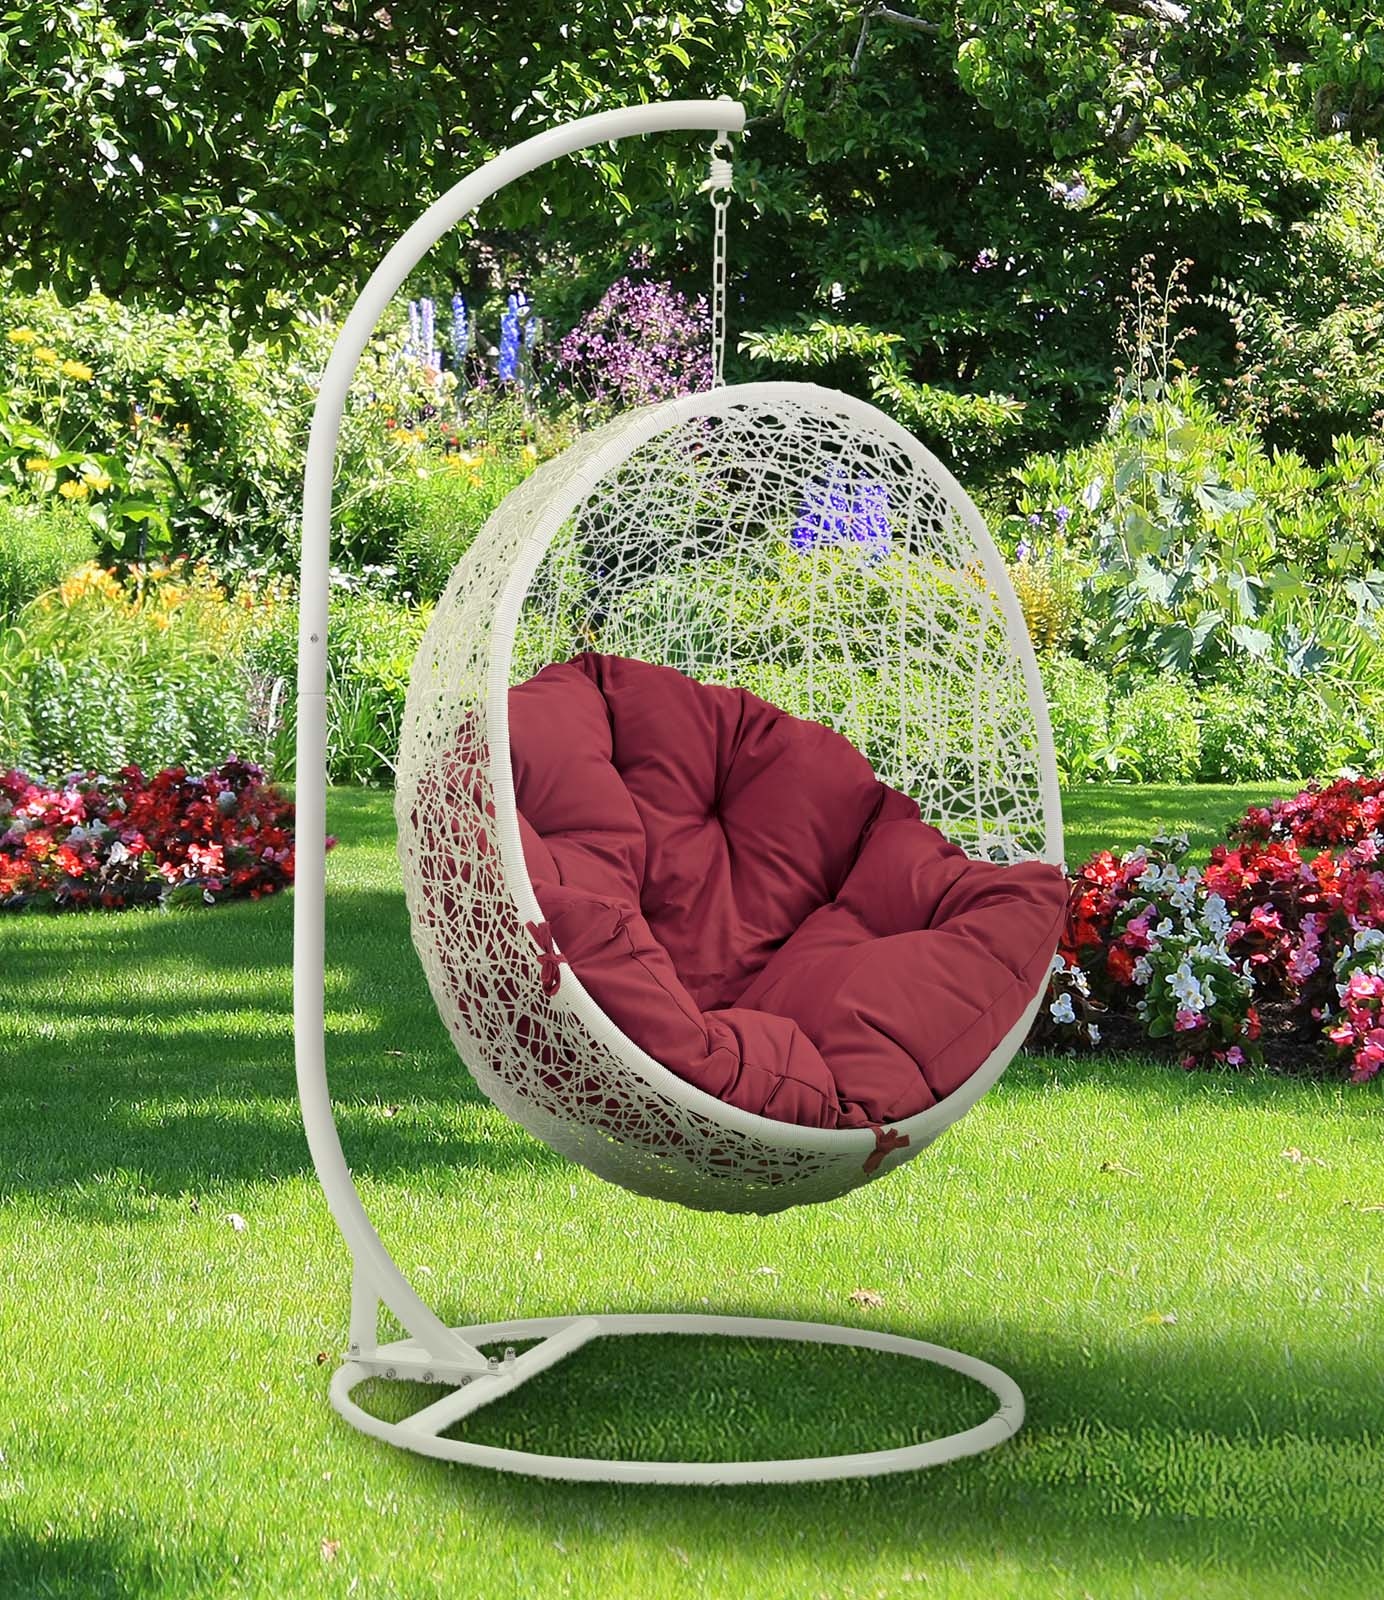 Hide Outdoor Patio Swing Chair With Stand White Red by Modern Living